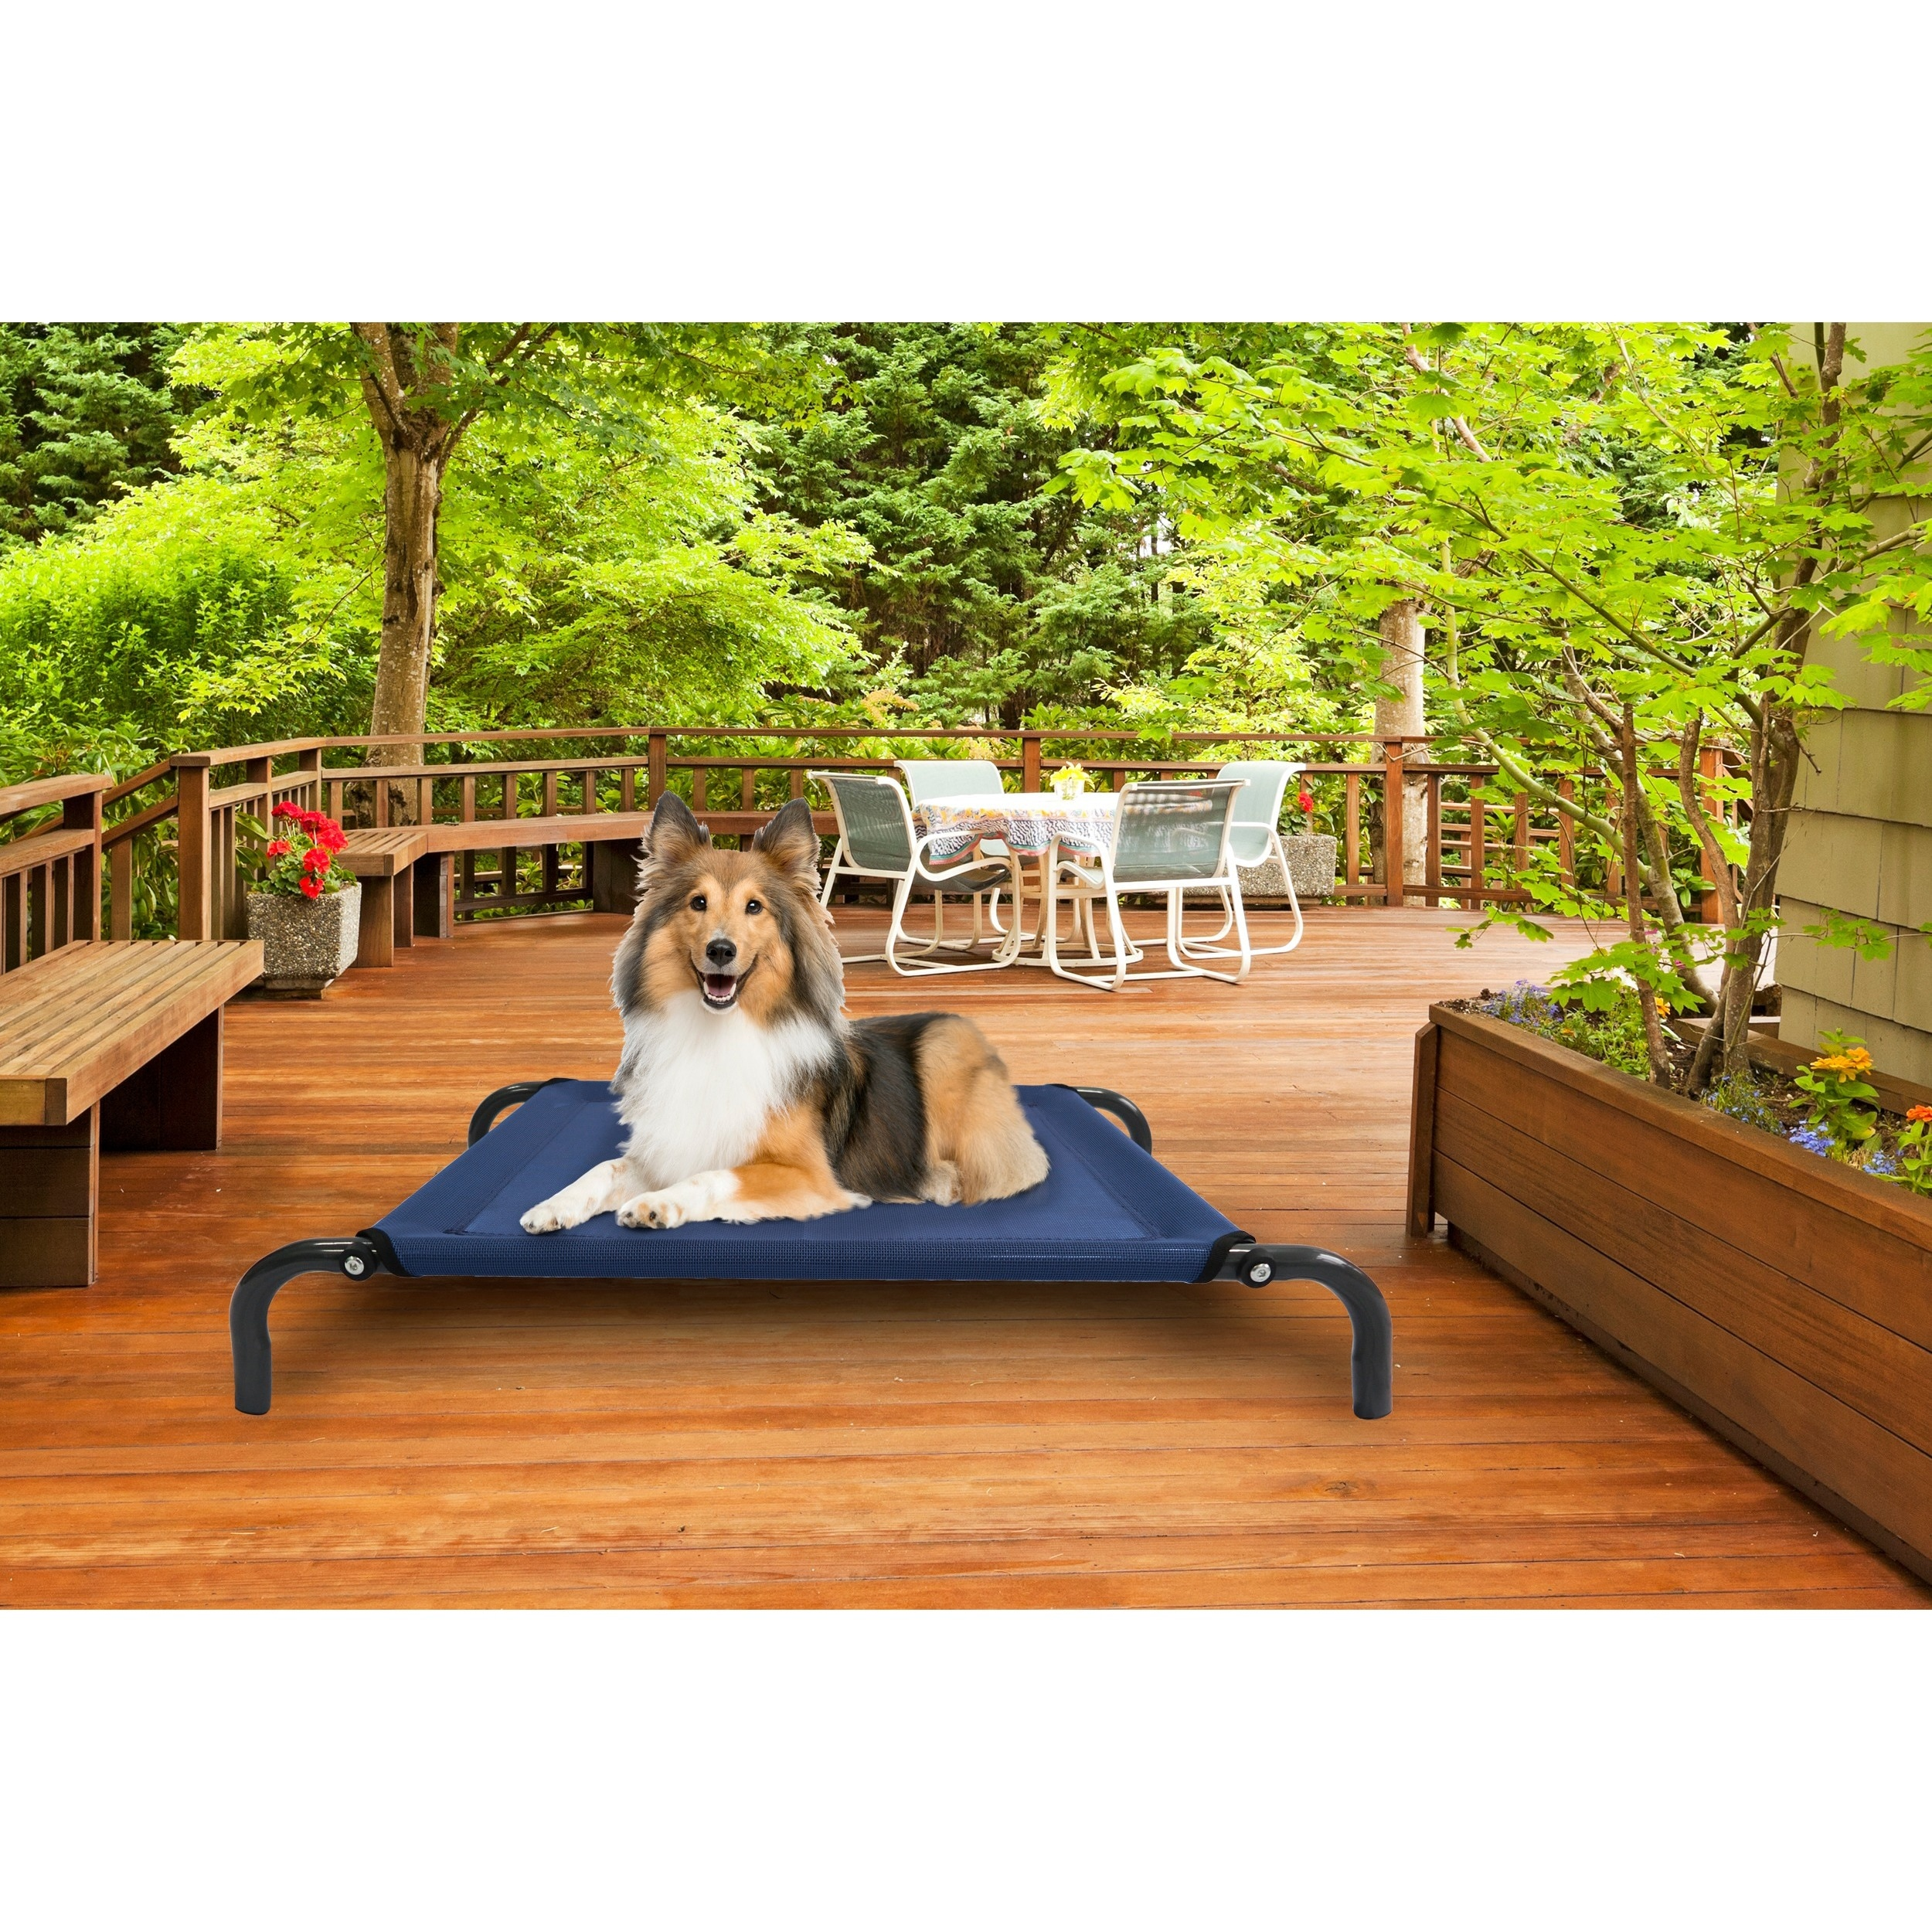 hammock korrectkritterscom beds dog furniture bed s coolaroo mesh